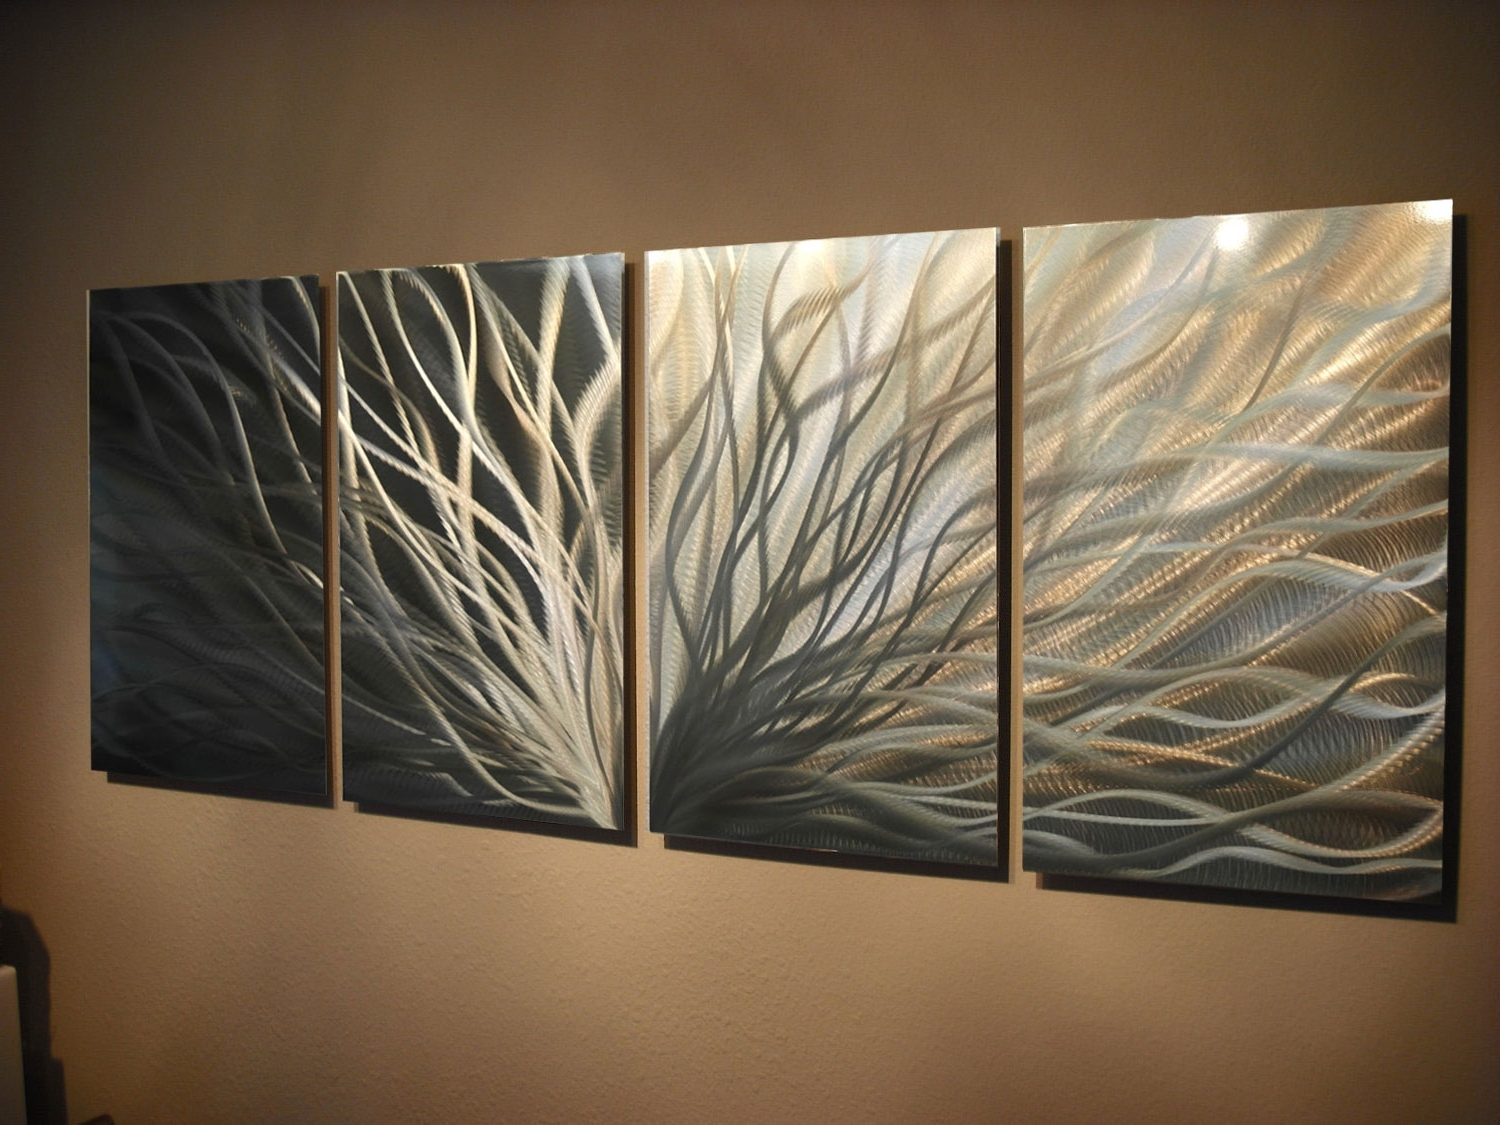 Abstract Metal Wall Art  Radiance Gold Silver  Contemporary Modern Regarding Widely Used Gold Metal Wall Art (View 2 of 15)